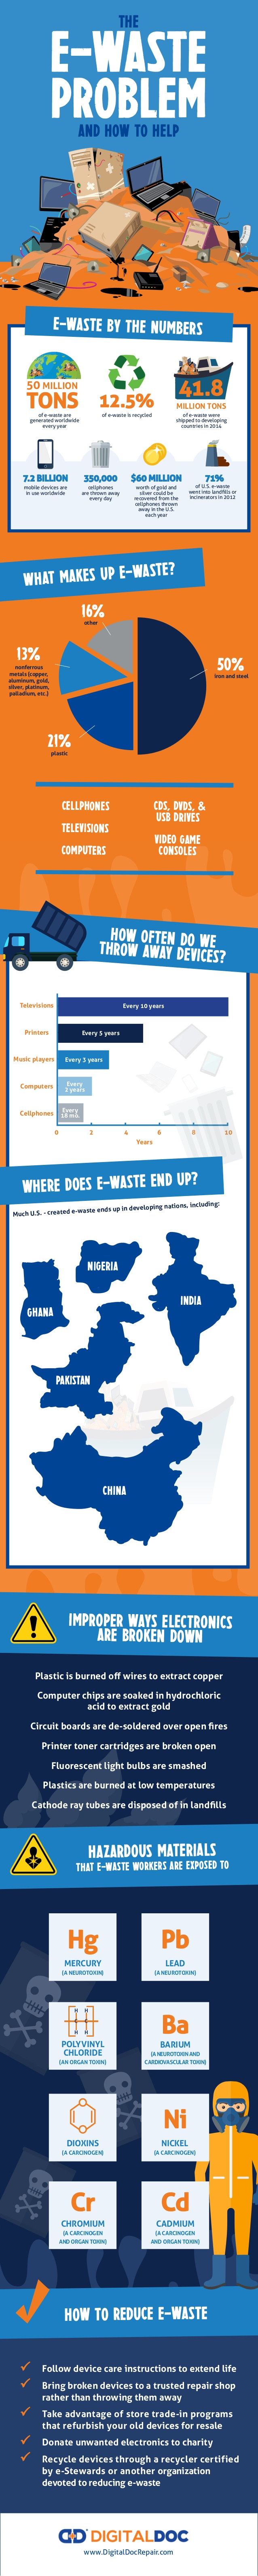 e-waste recycling infographic high tech trash